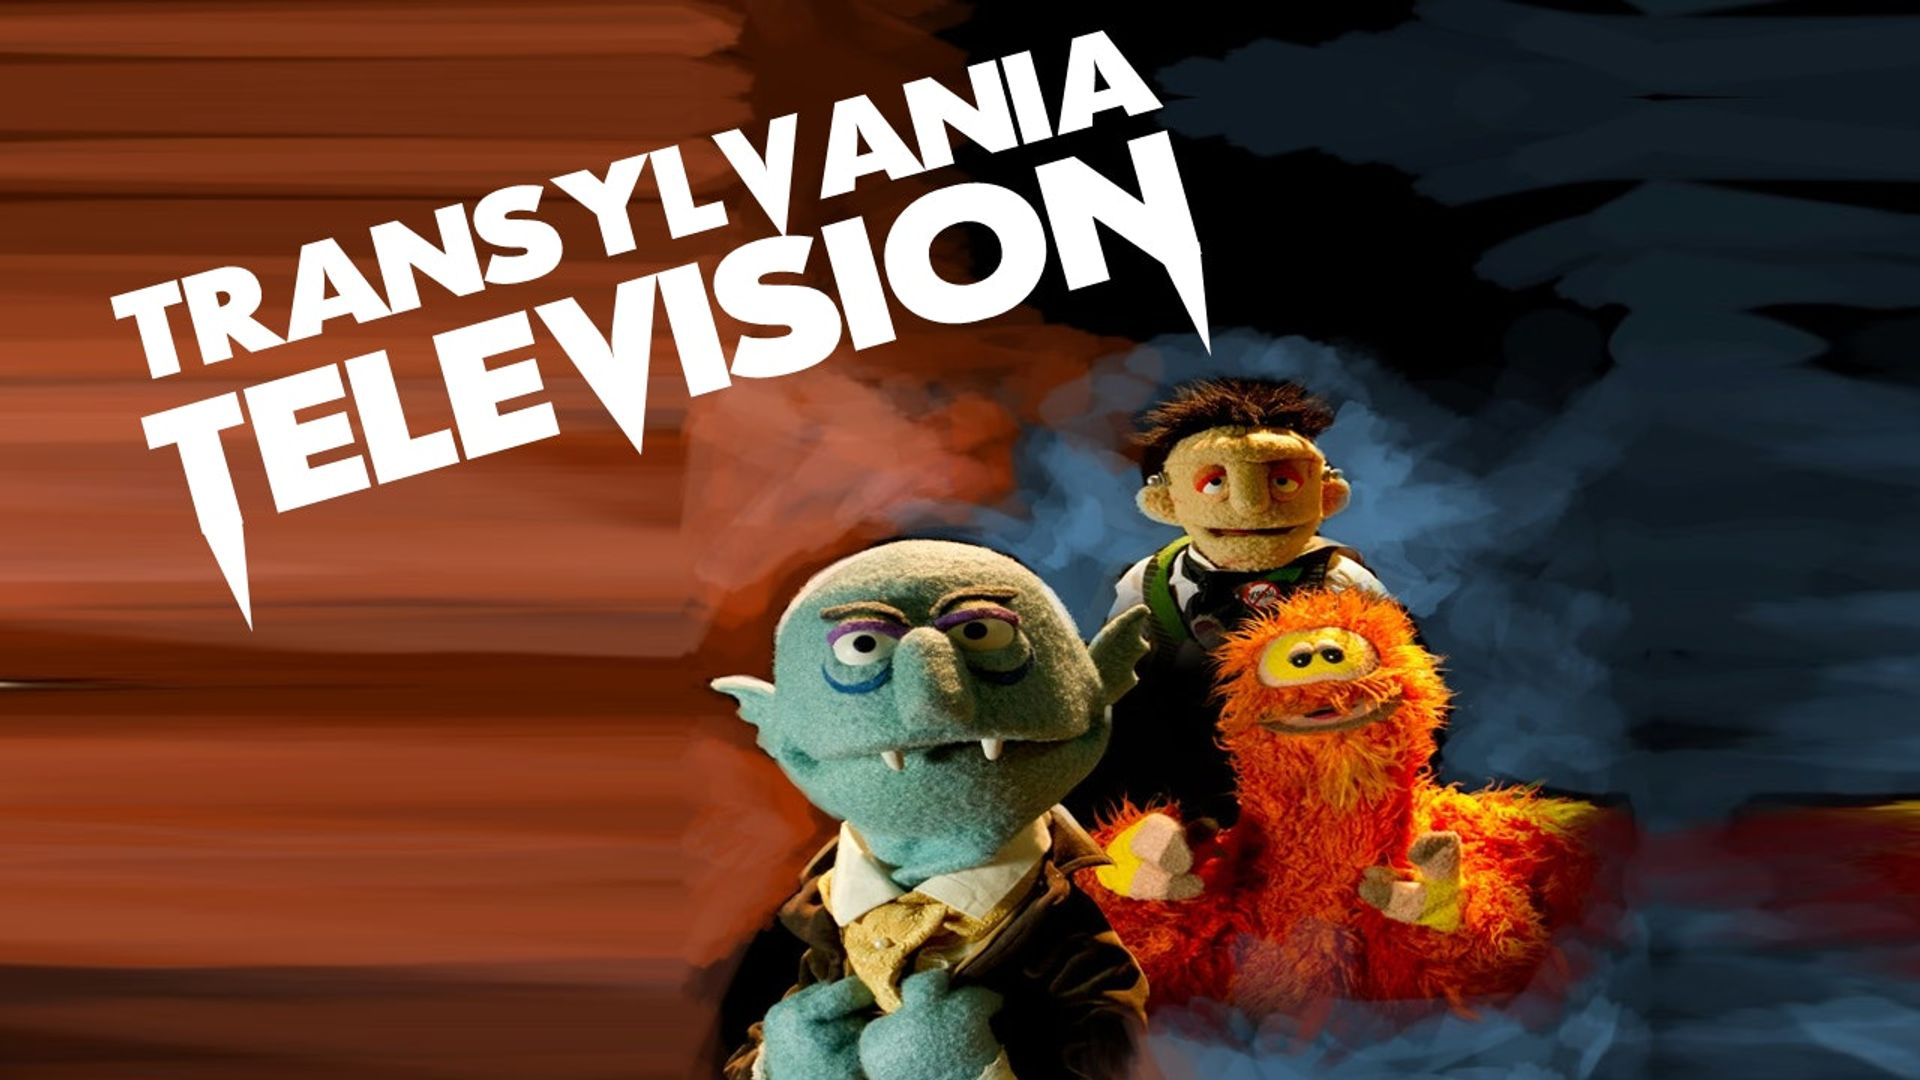 Transylvania Television Where To Watch Every Episode Streaming